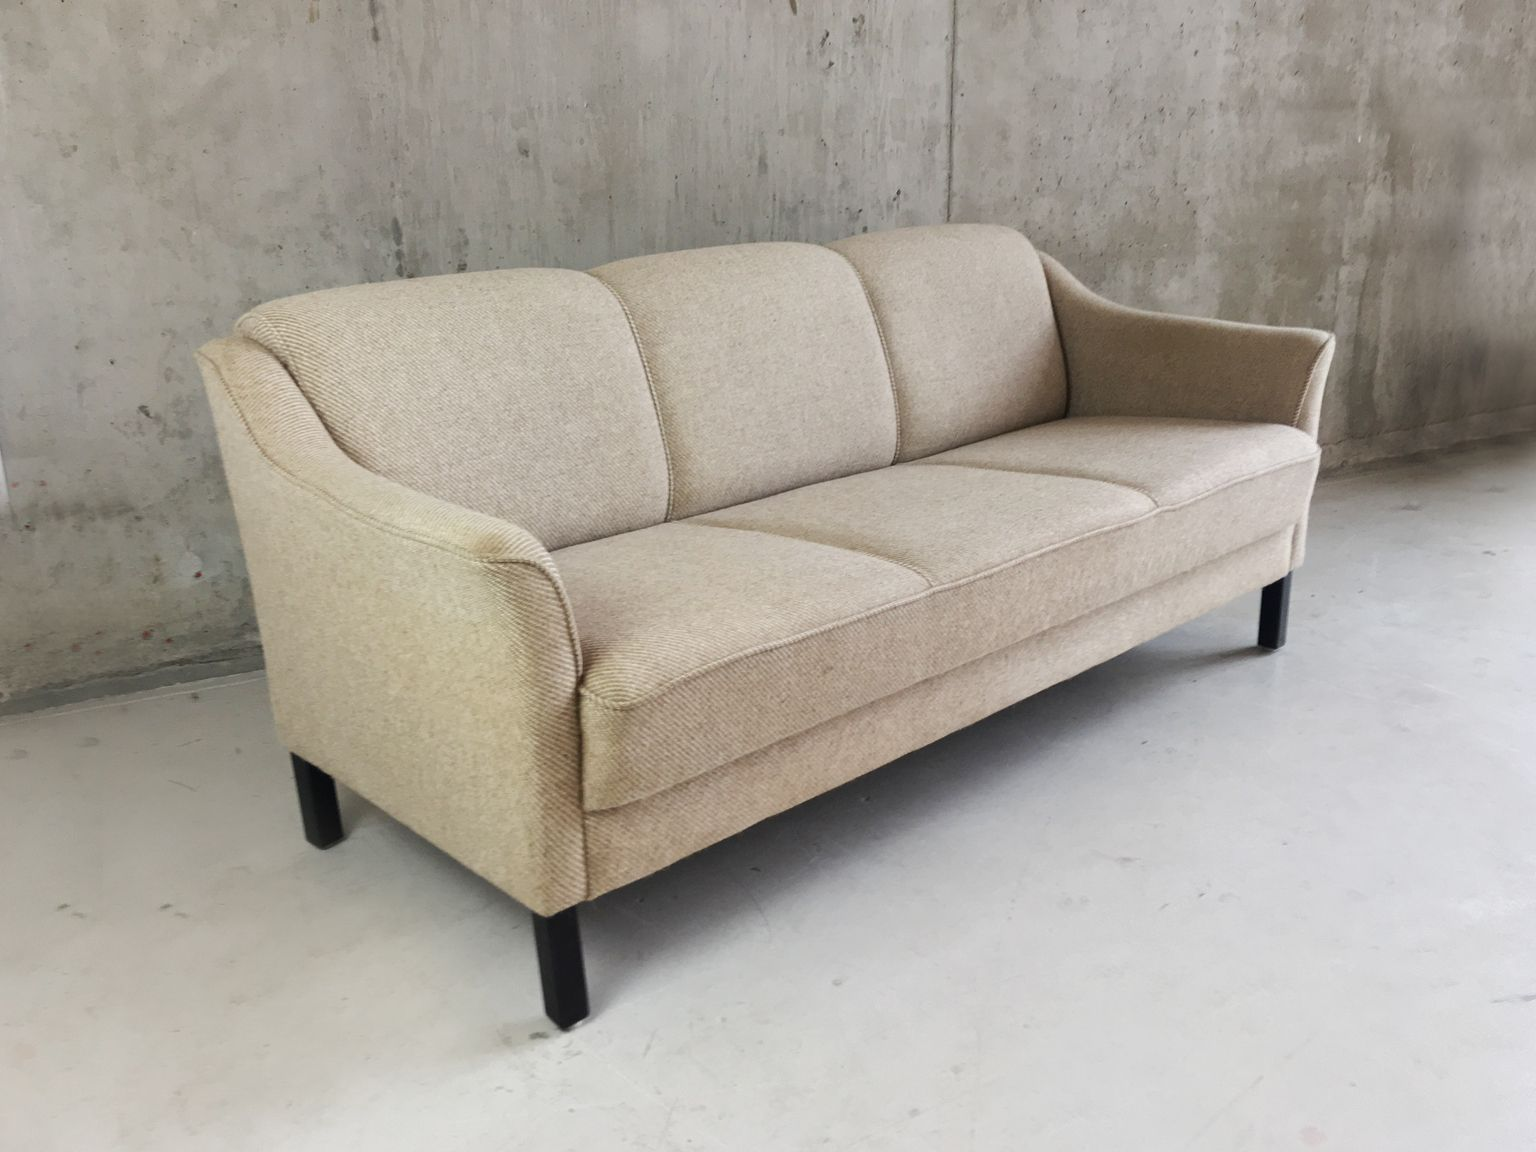 d nisches mid century drei sitzer sofa mit herringbone wollbezug bei pamono kaufen. Black Bedroom Furniture Sets. Home Design Ideas